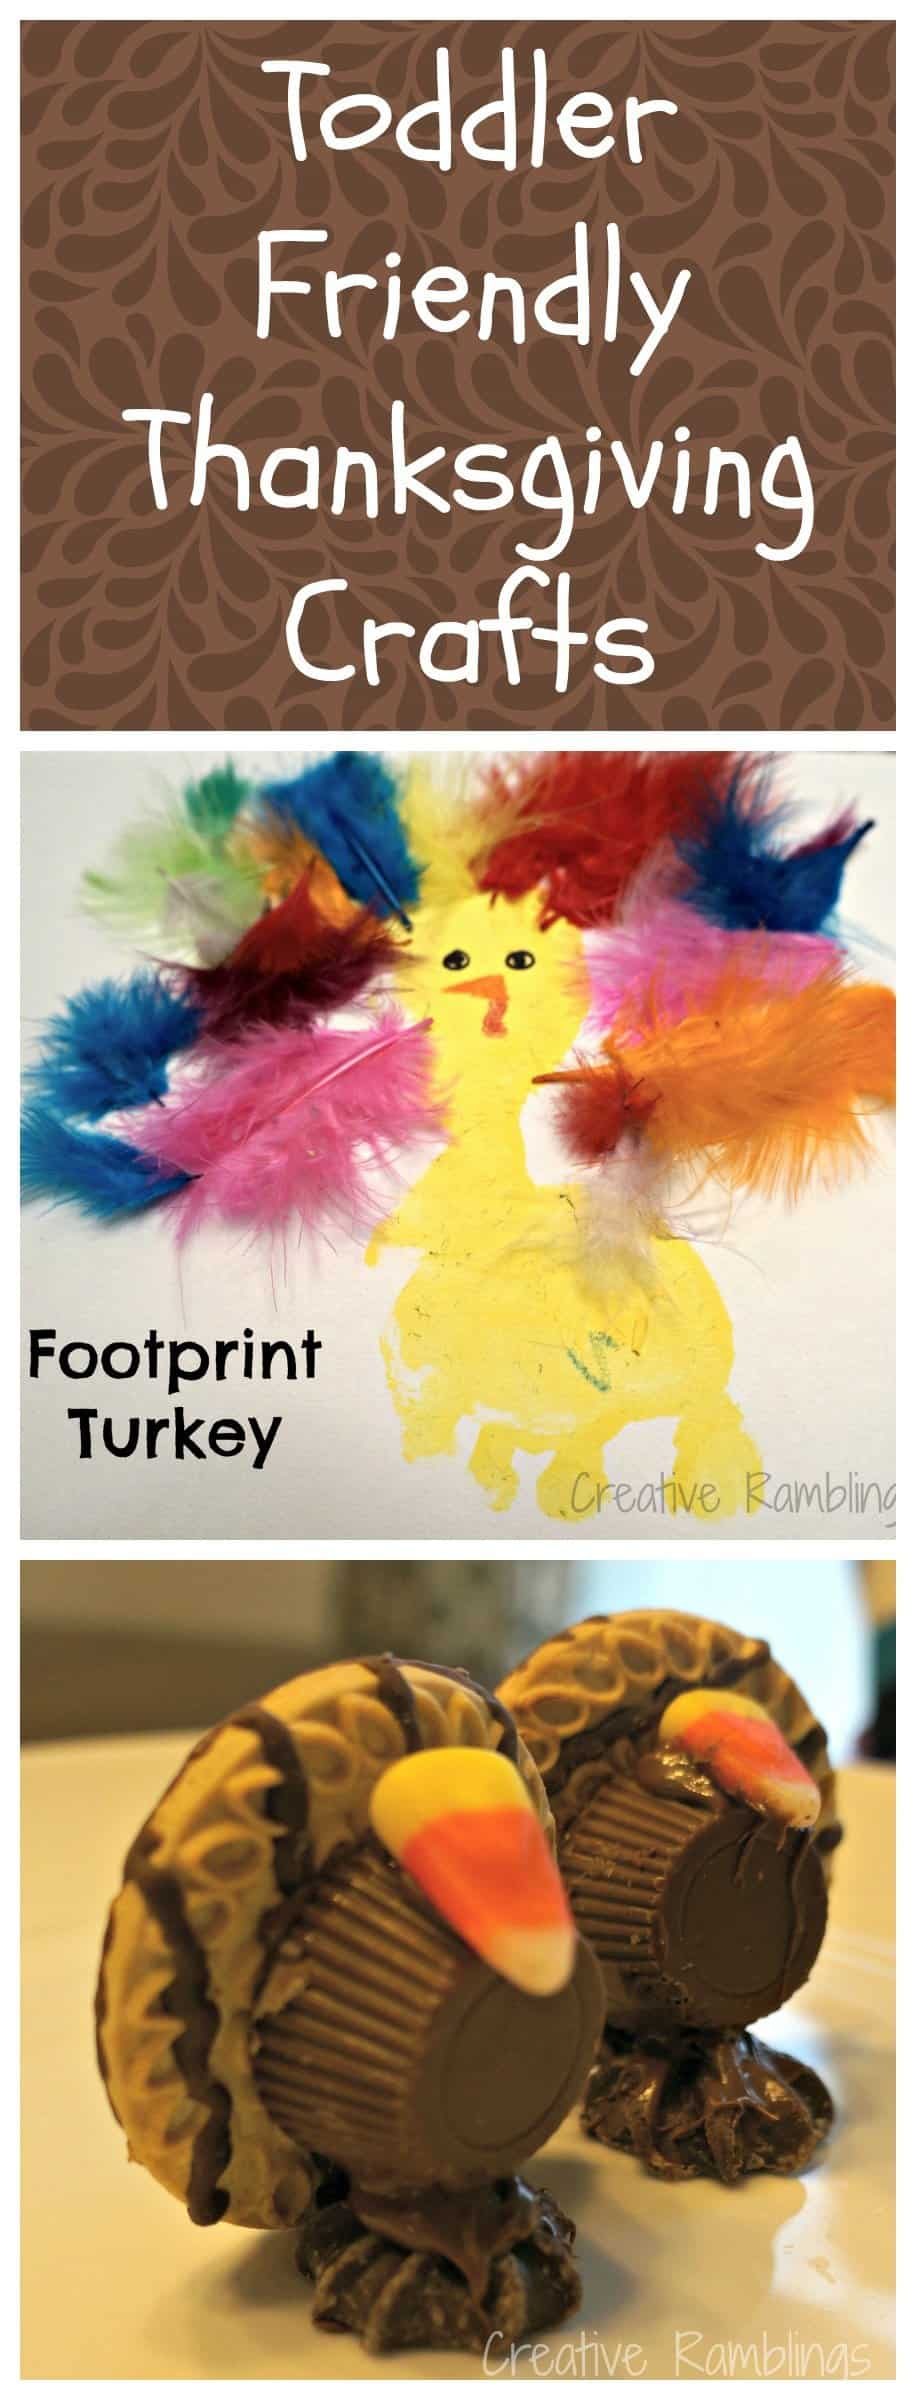 Toddler Friendly #Thanksgiving Crafts